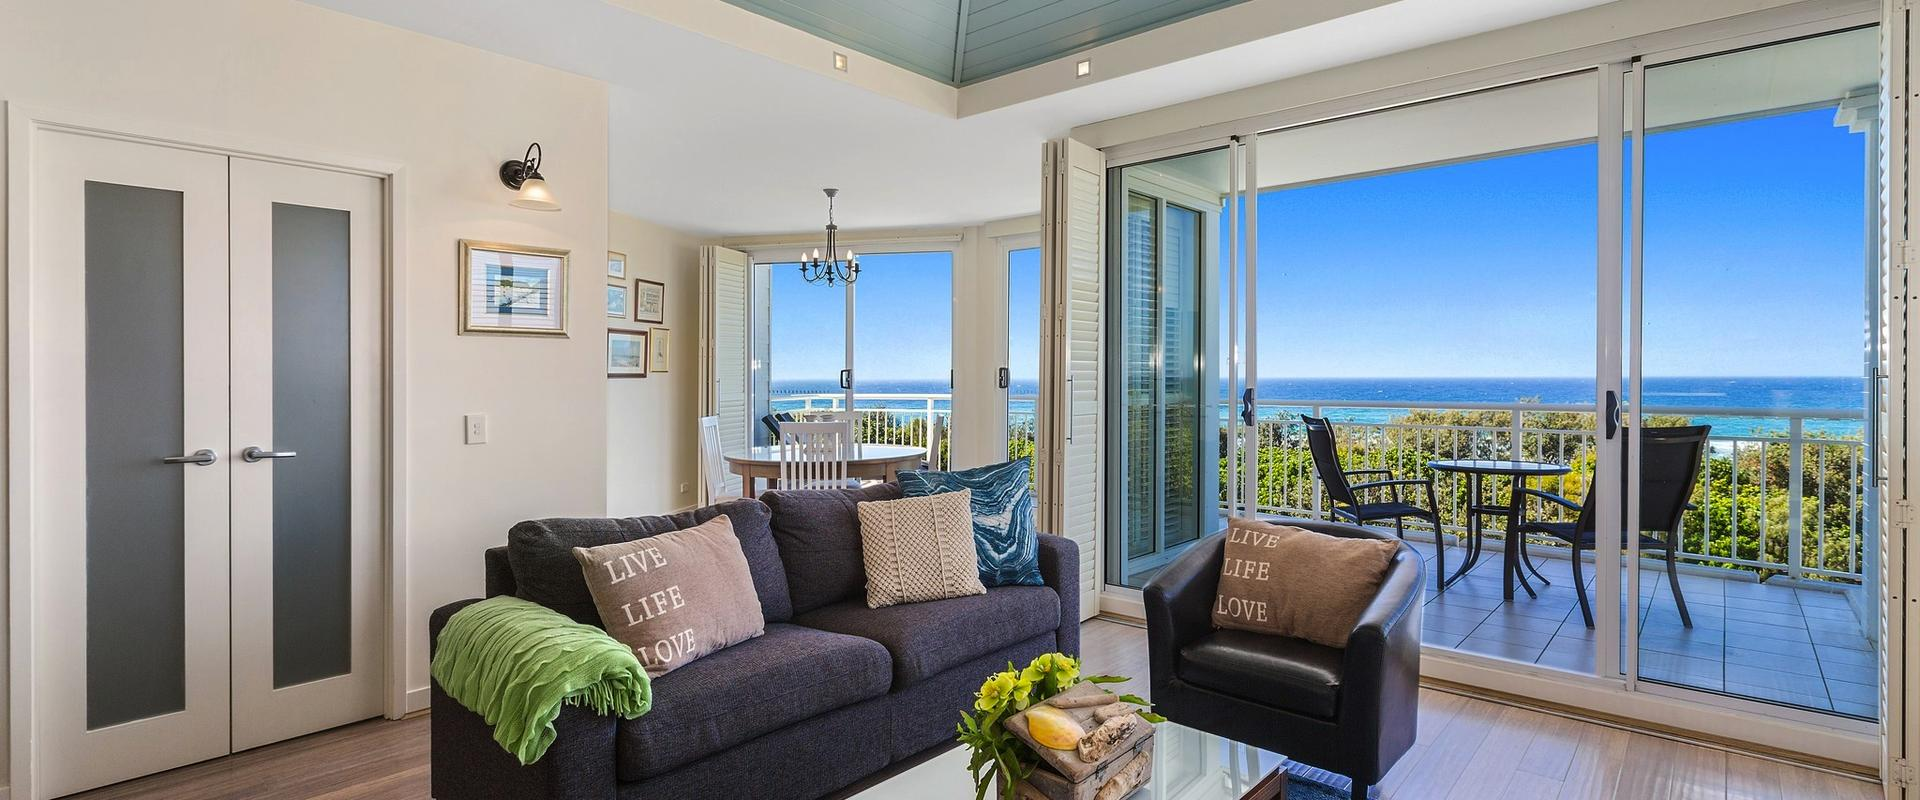 Holiday House Kingscliff – Spend Holidays With Great Comfort